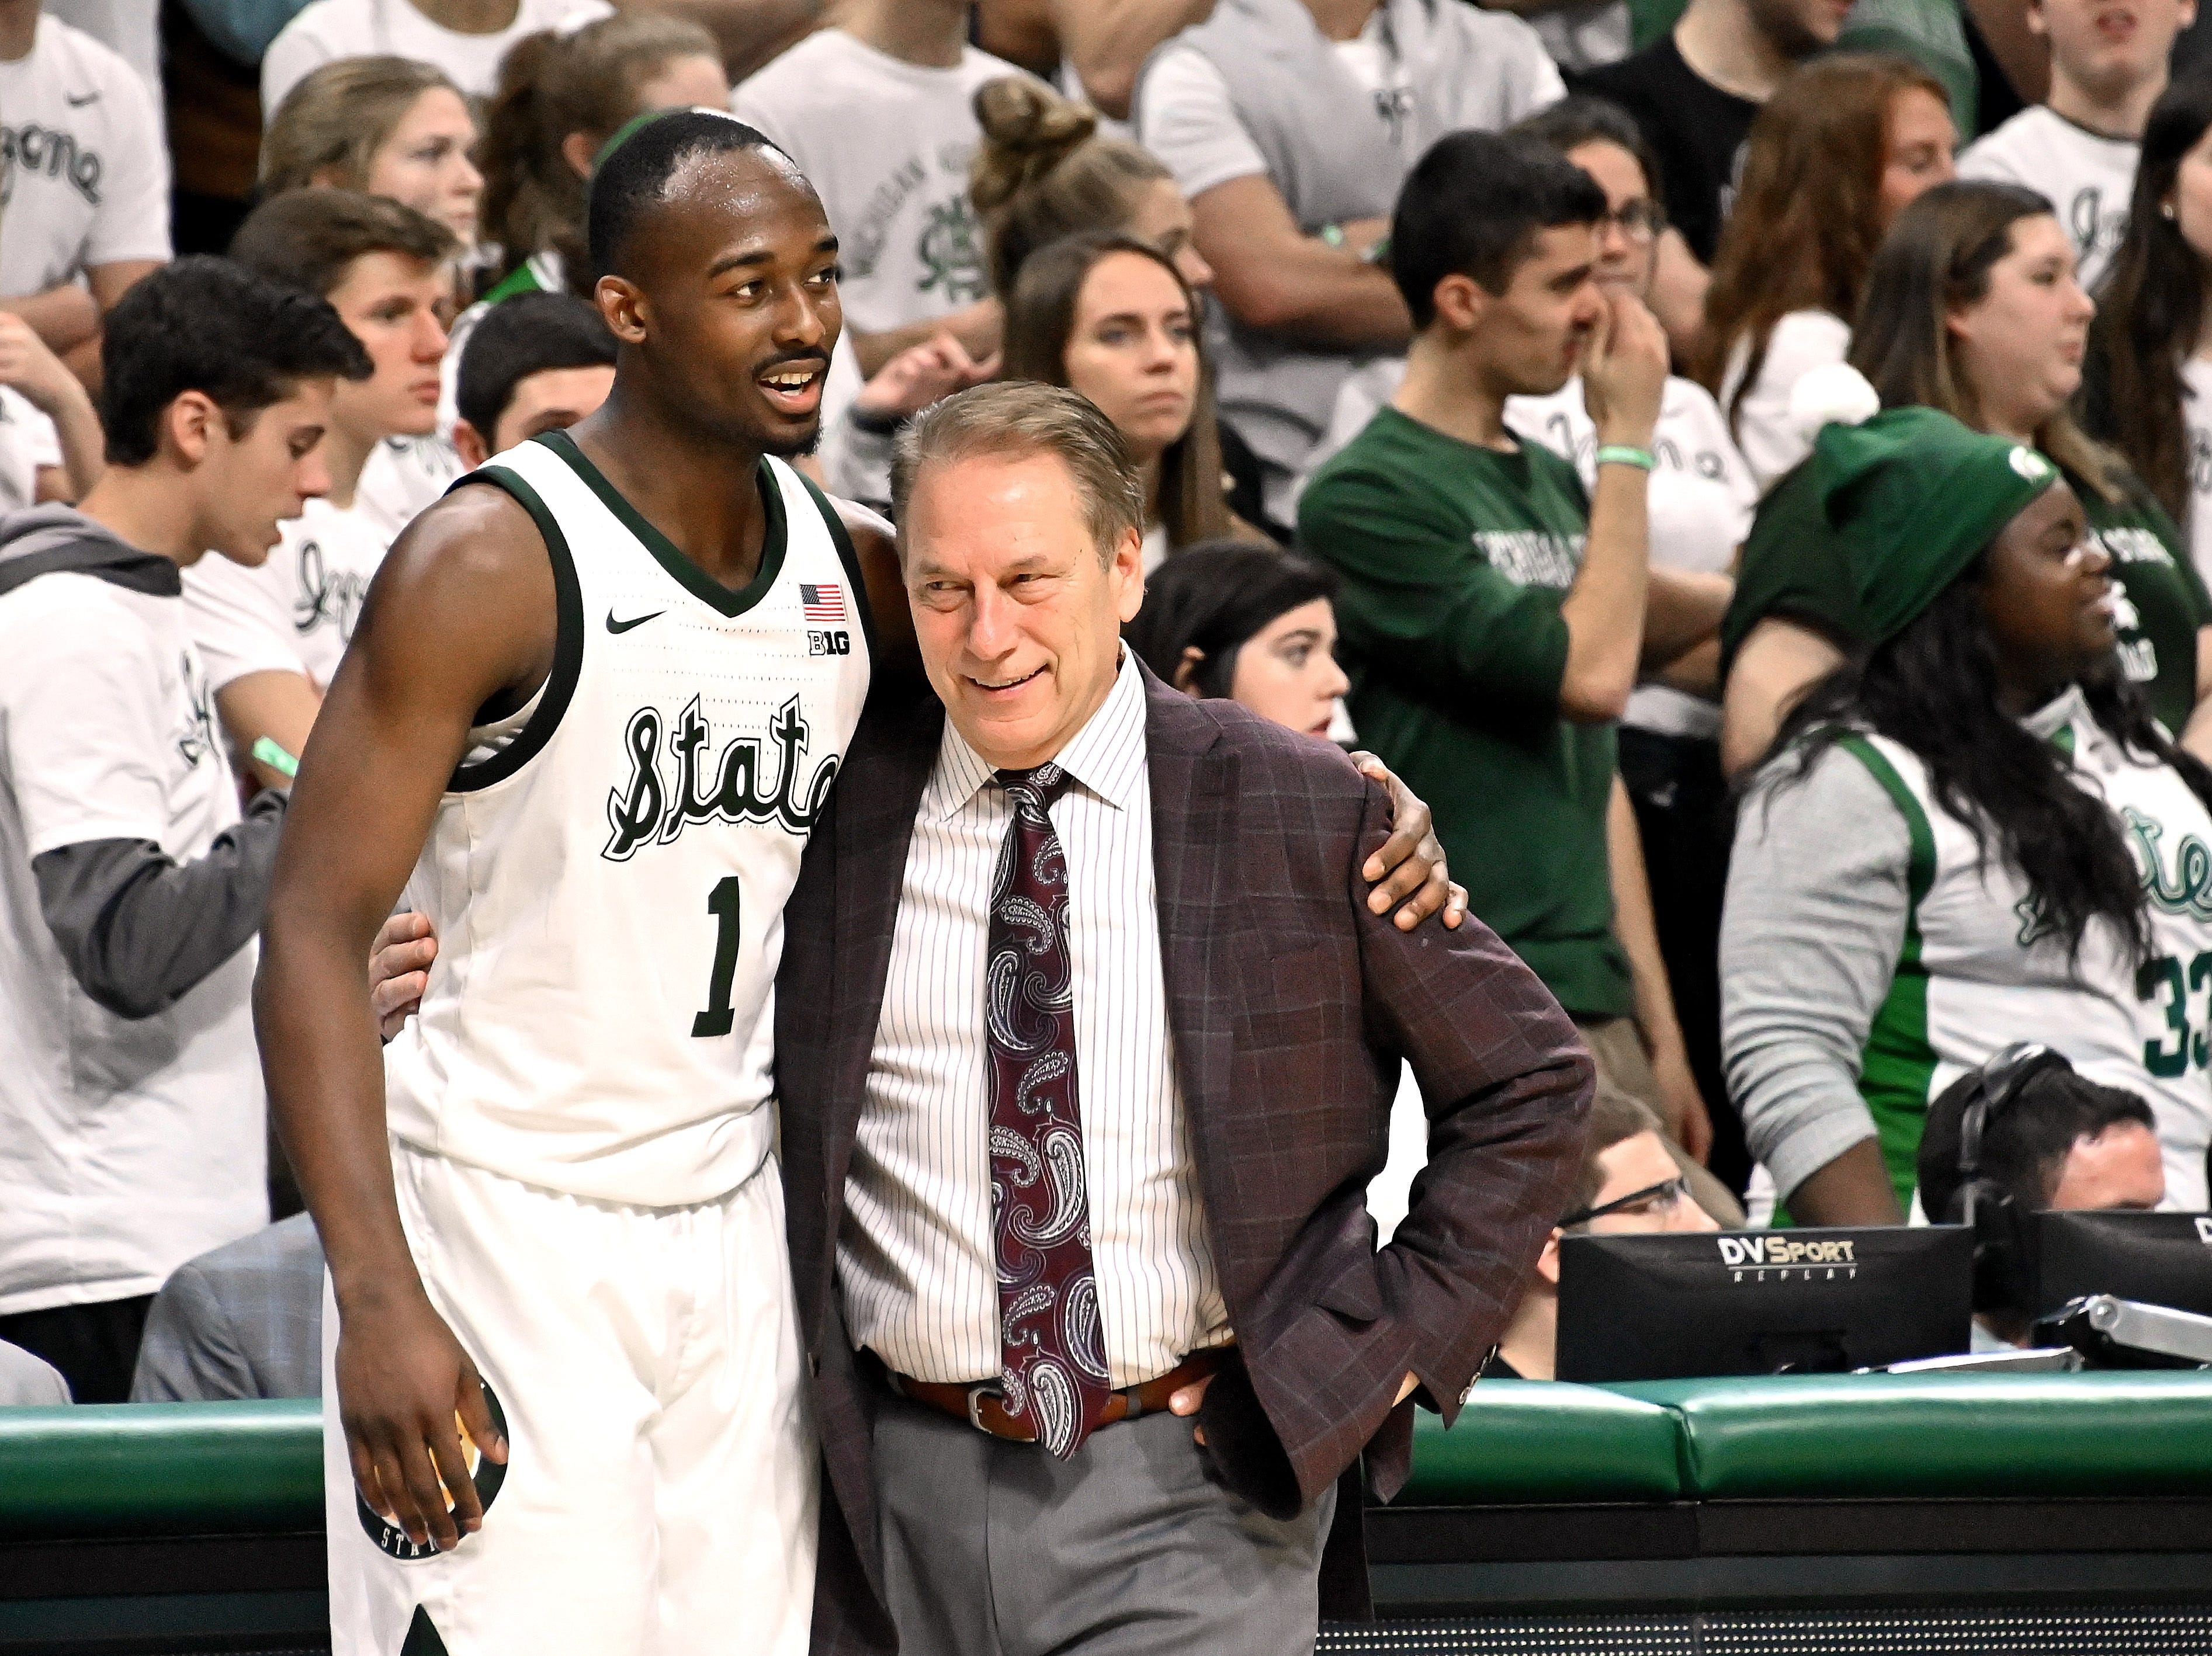 It was all smiles and kind words when Joshua Langford came out of the game and joined Tom Izzo on the sidelines as MSU beats Iowa 90-68, at Breslin center in East Lansing on Dec 03, 2018.